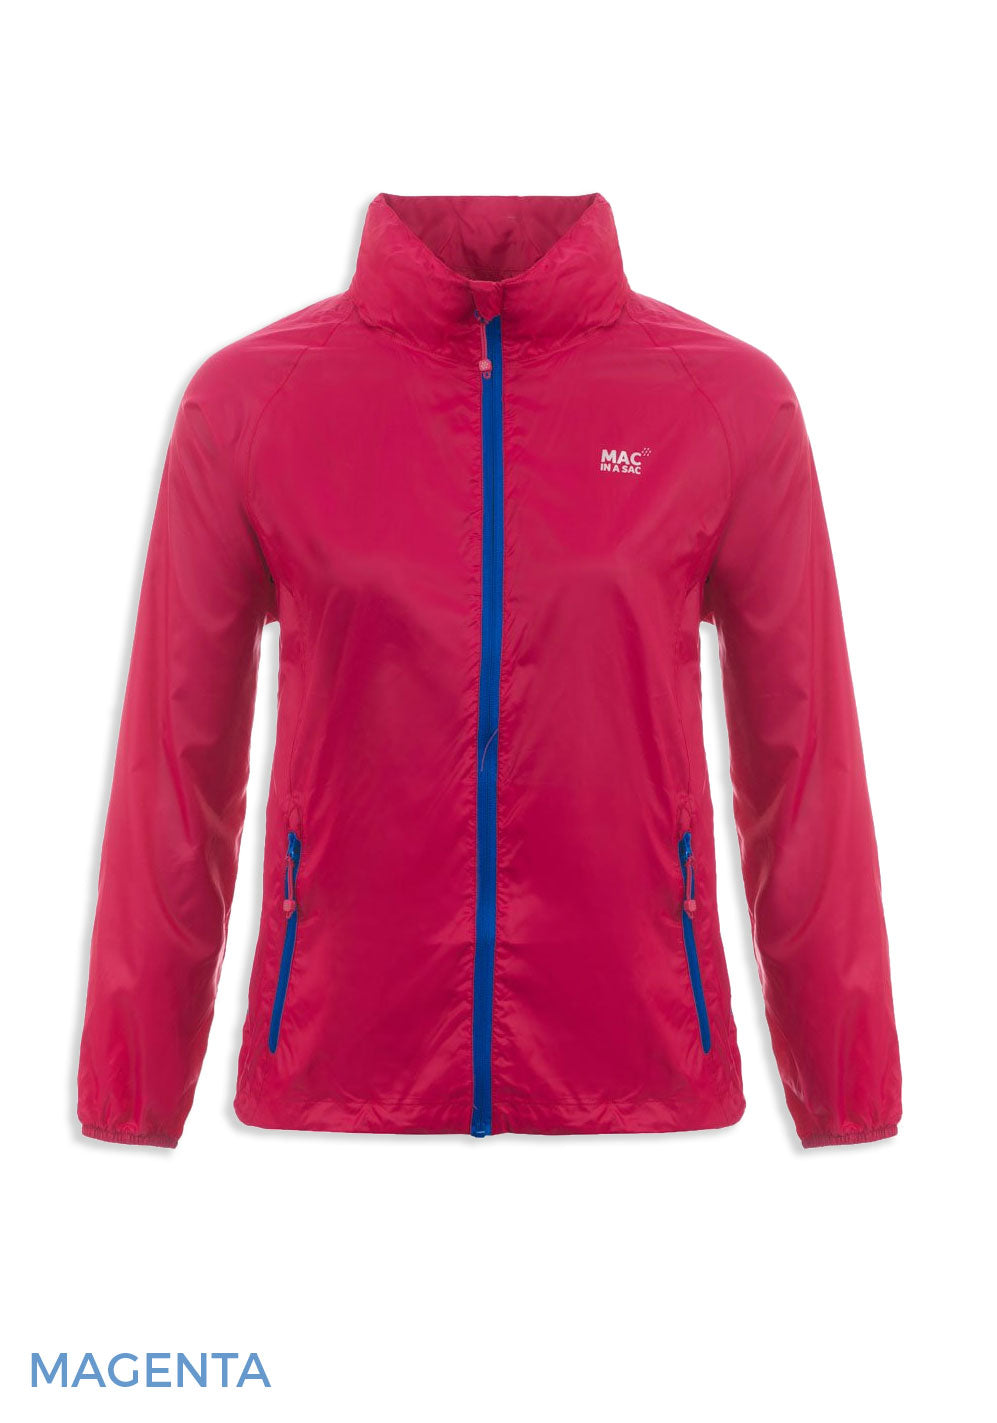 Magenta Packaway Waterproof Jacket by Lighthouse